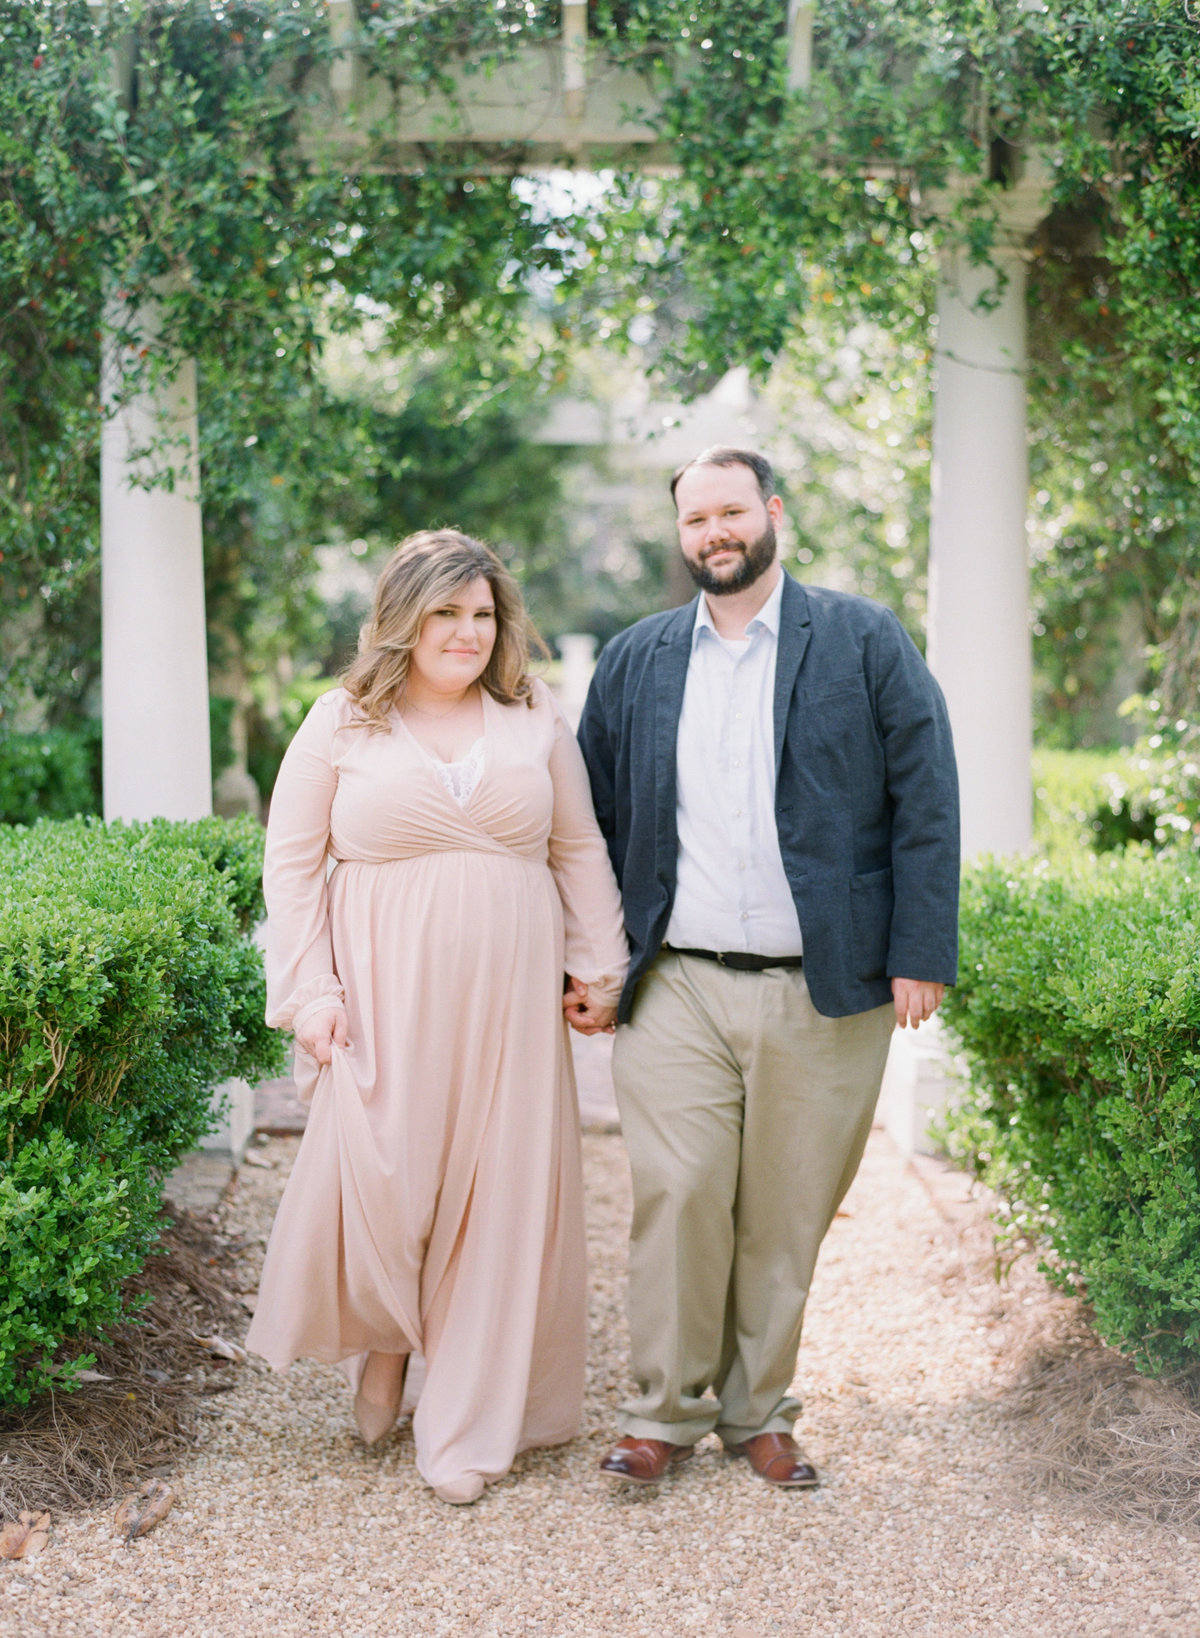 CourtneyWoodhamPhoto-59